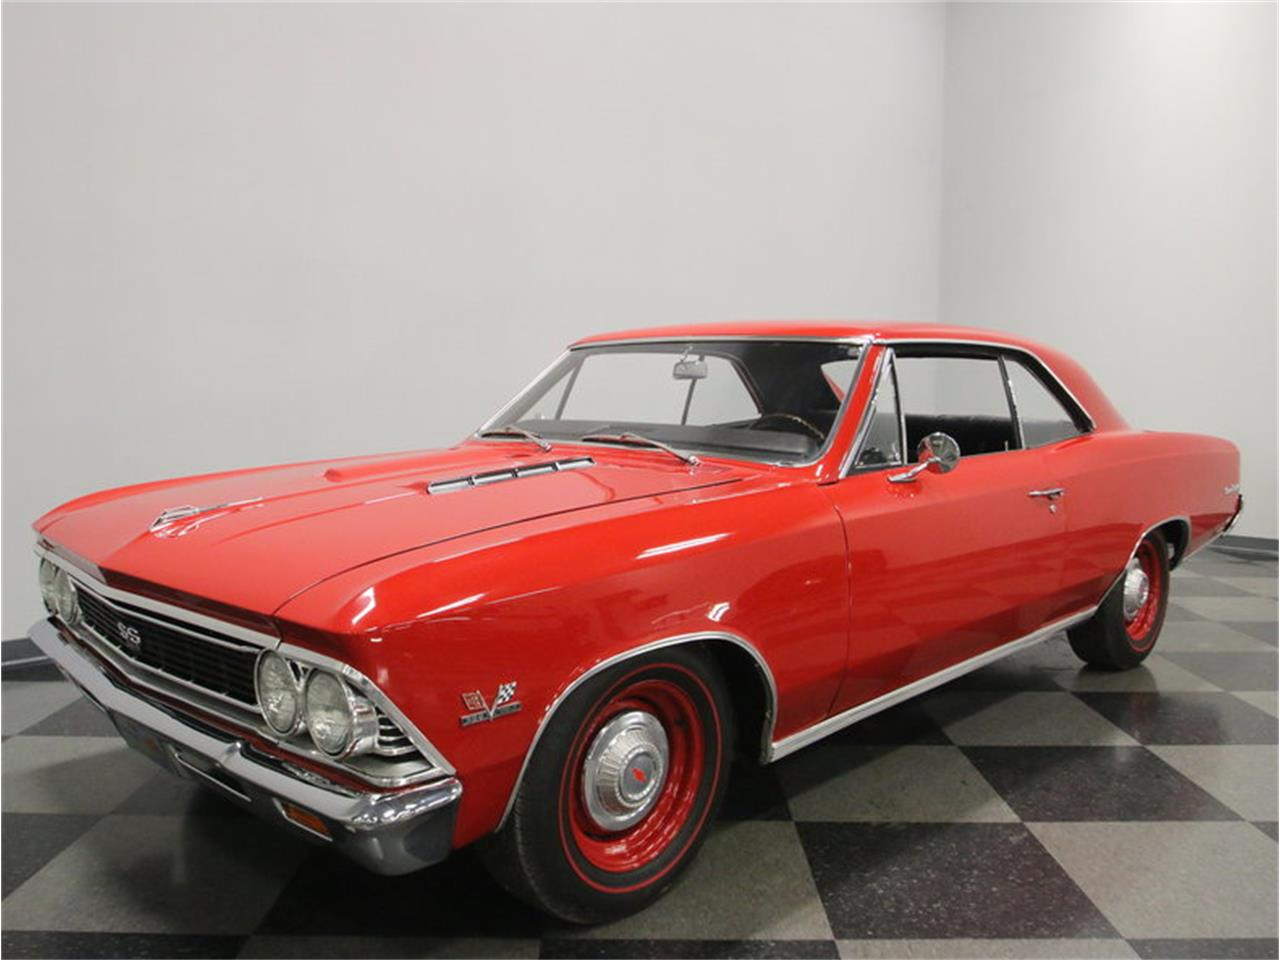 Large Picture of '66 Chevelle SS located in Tennessee - $52,995.00 Offered by Streetside Classics - Nashville - MO3Y